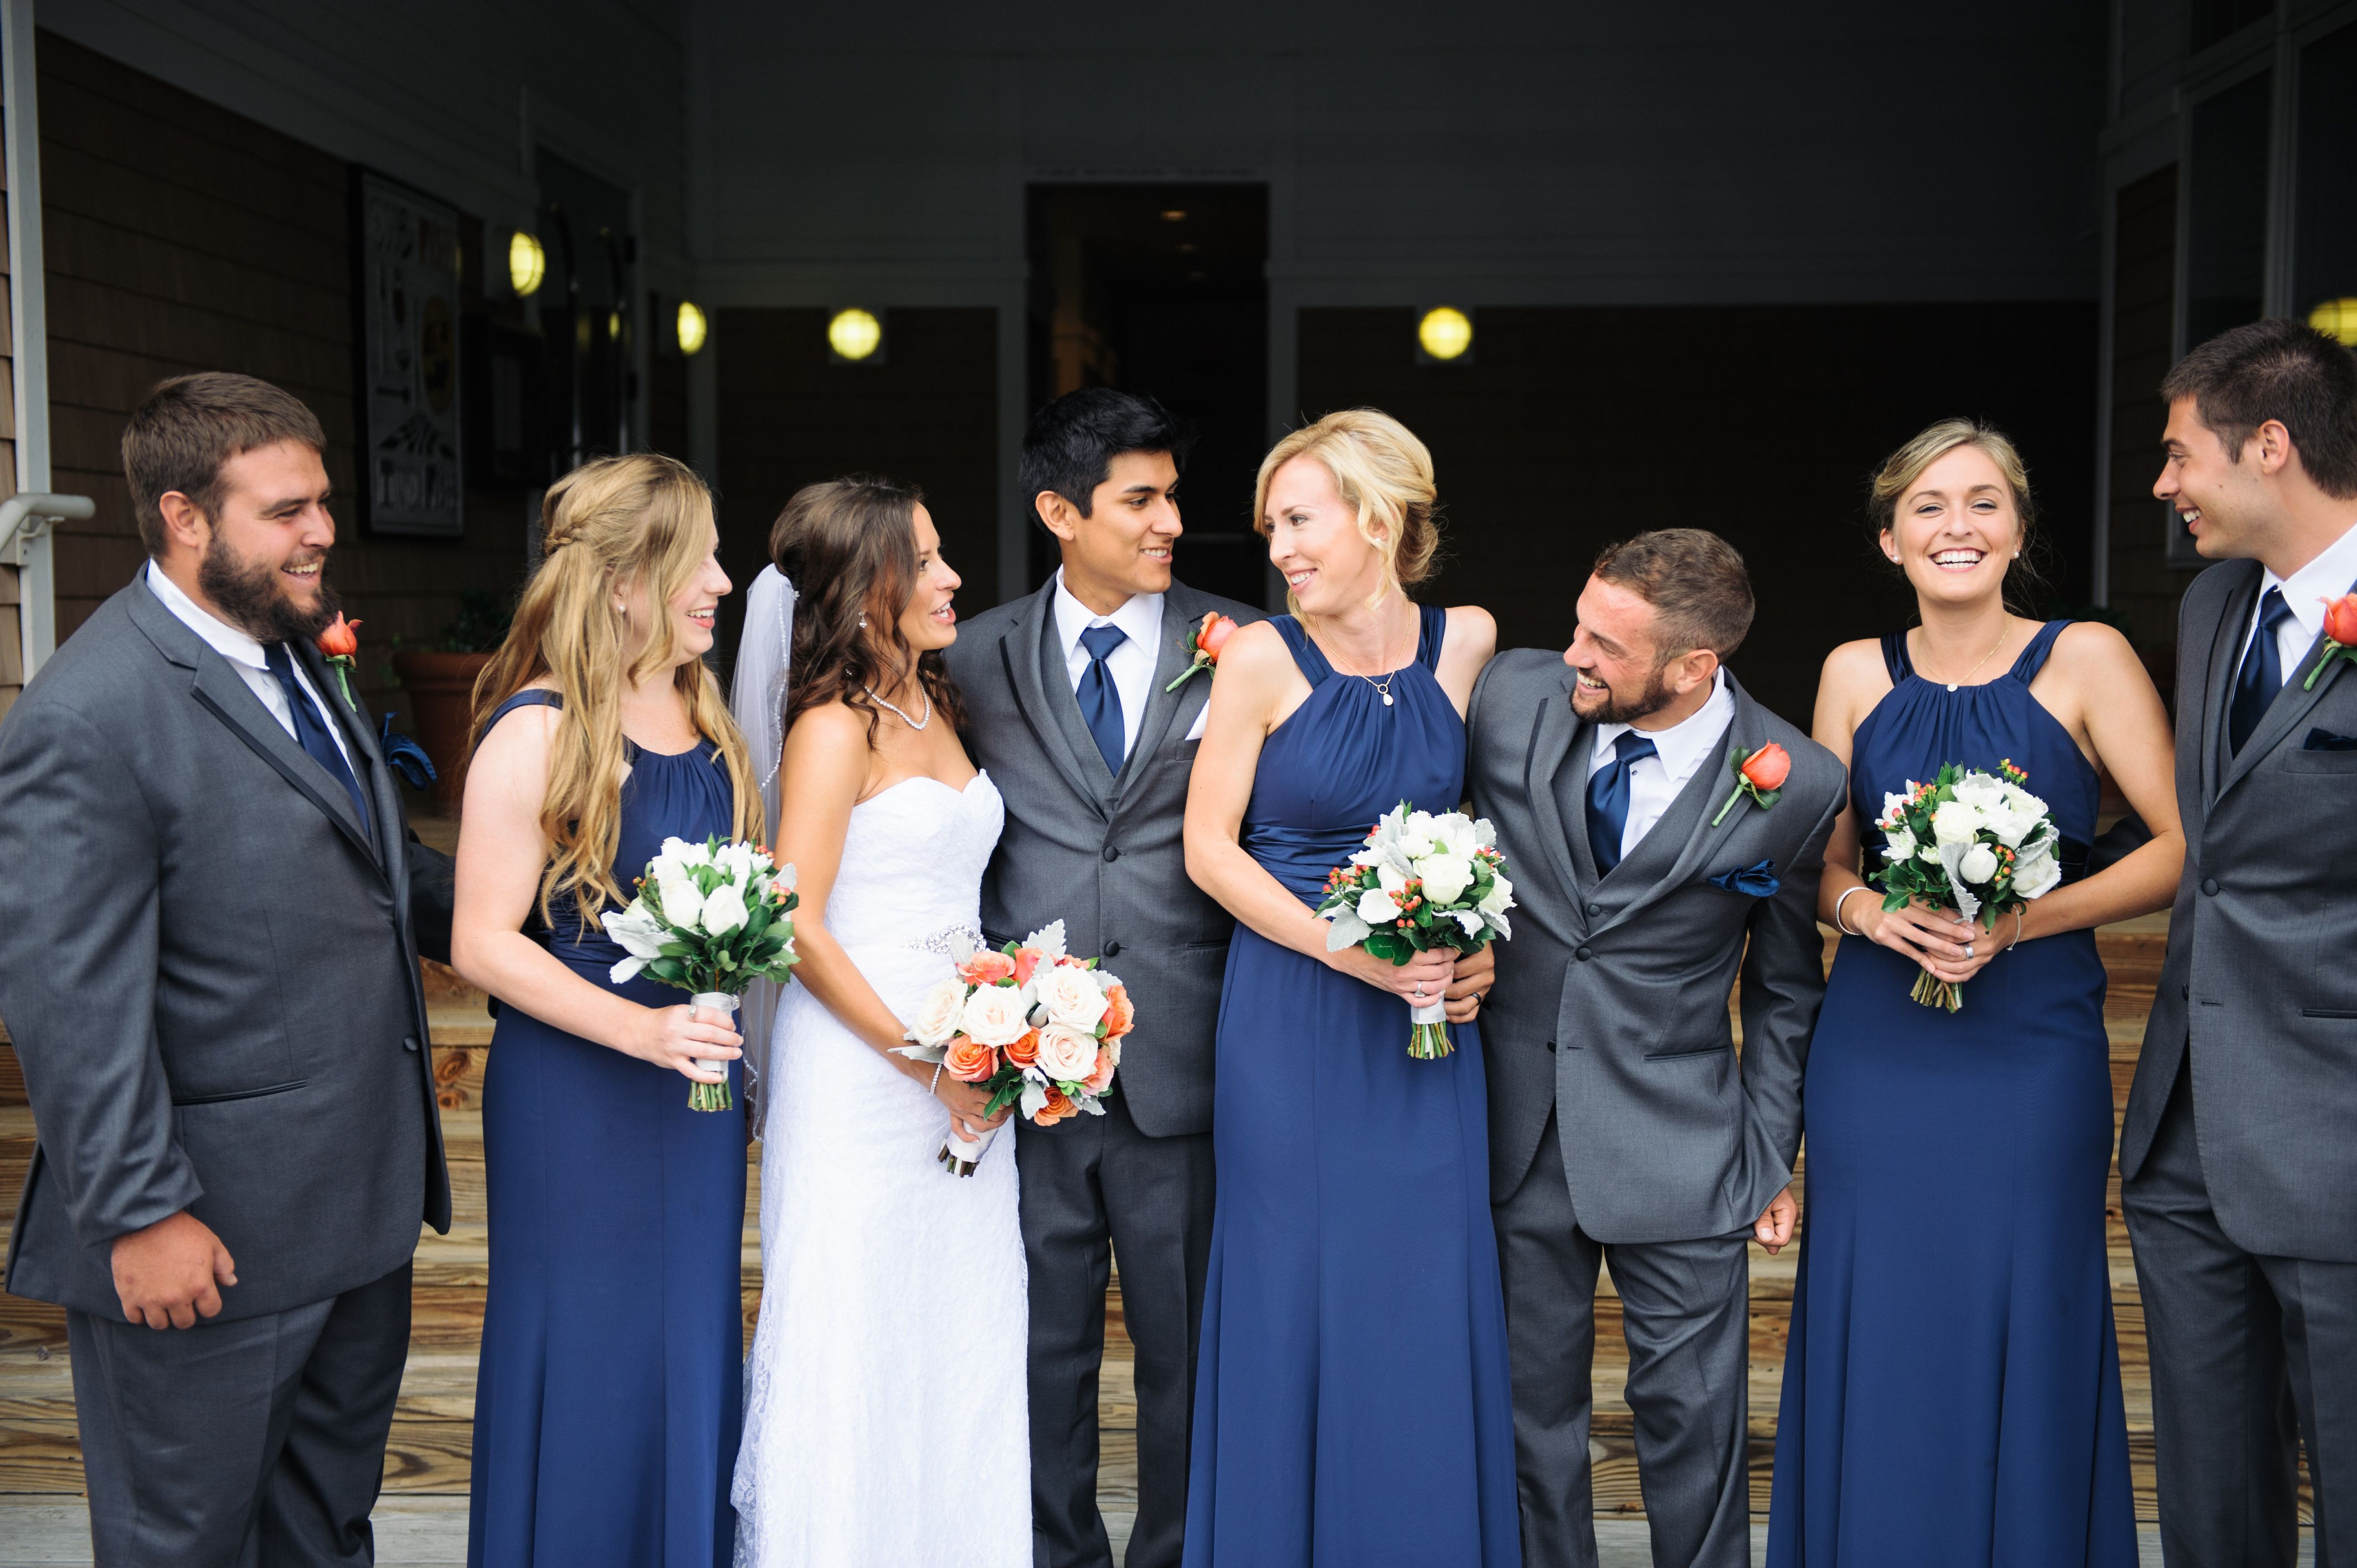 Wedding Party In Navy And Charcoal Gray Navy Bridal Parties Gray Wedding Party Navy And Burgundy Wedding